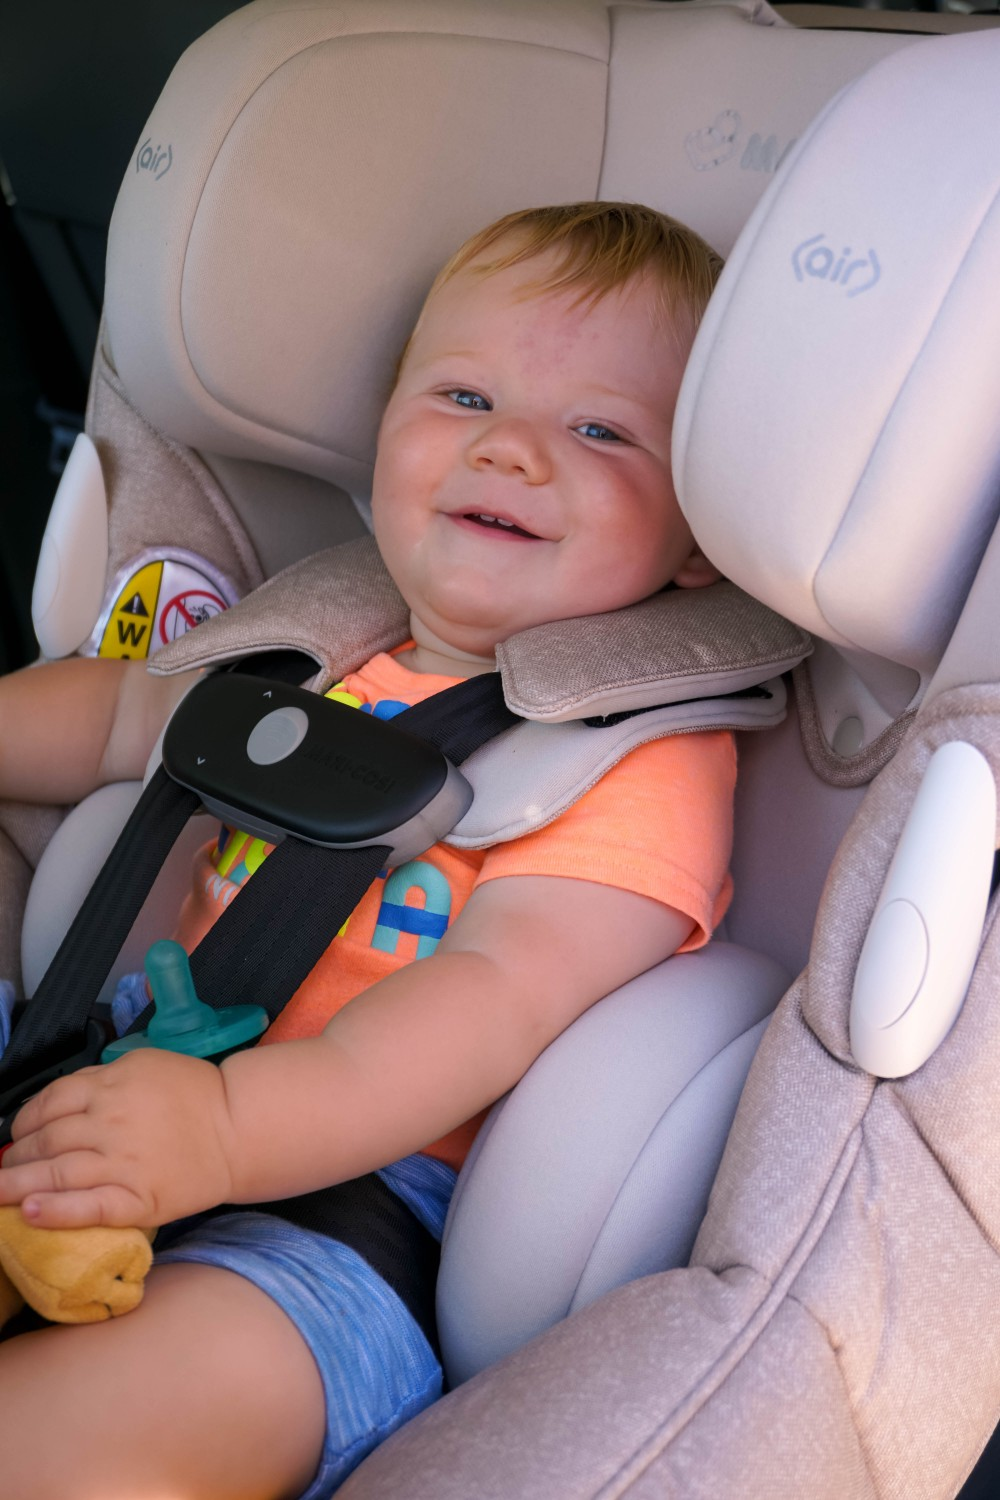 Maxi-Cosi Pria 85 Max Convertible Car Seat-Maxi Cosi Car Seat-Baby Gear-Best of Baby Products-Convertible Car Seat-Motherhood Post-Have Need Want 17